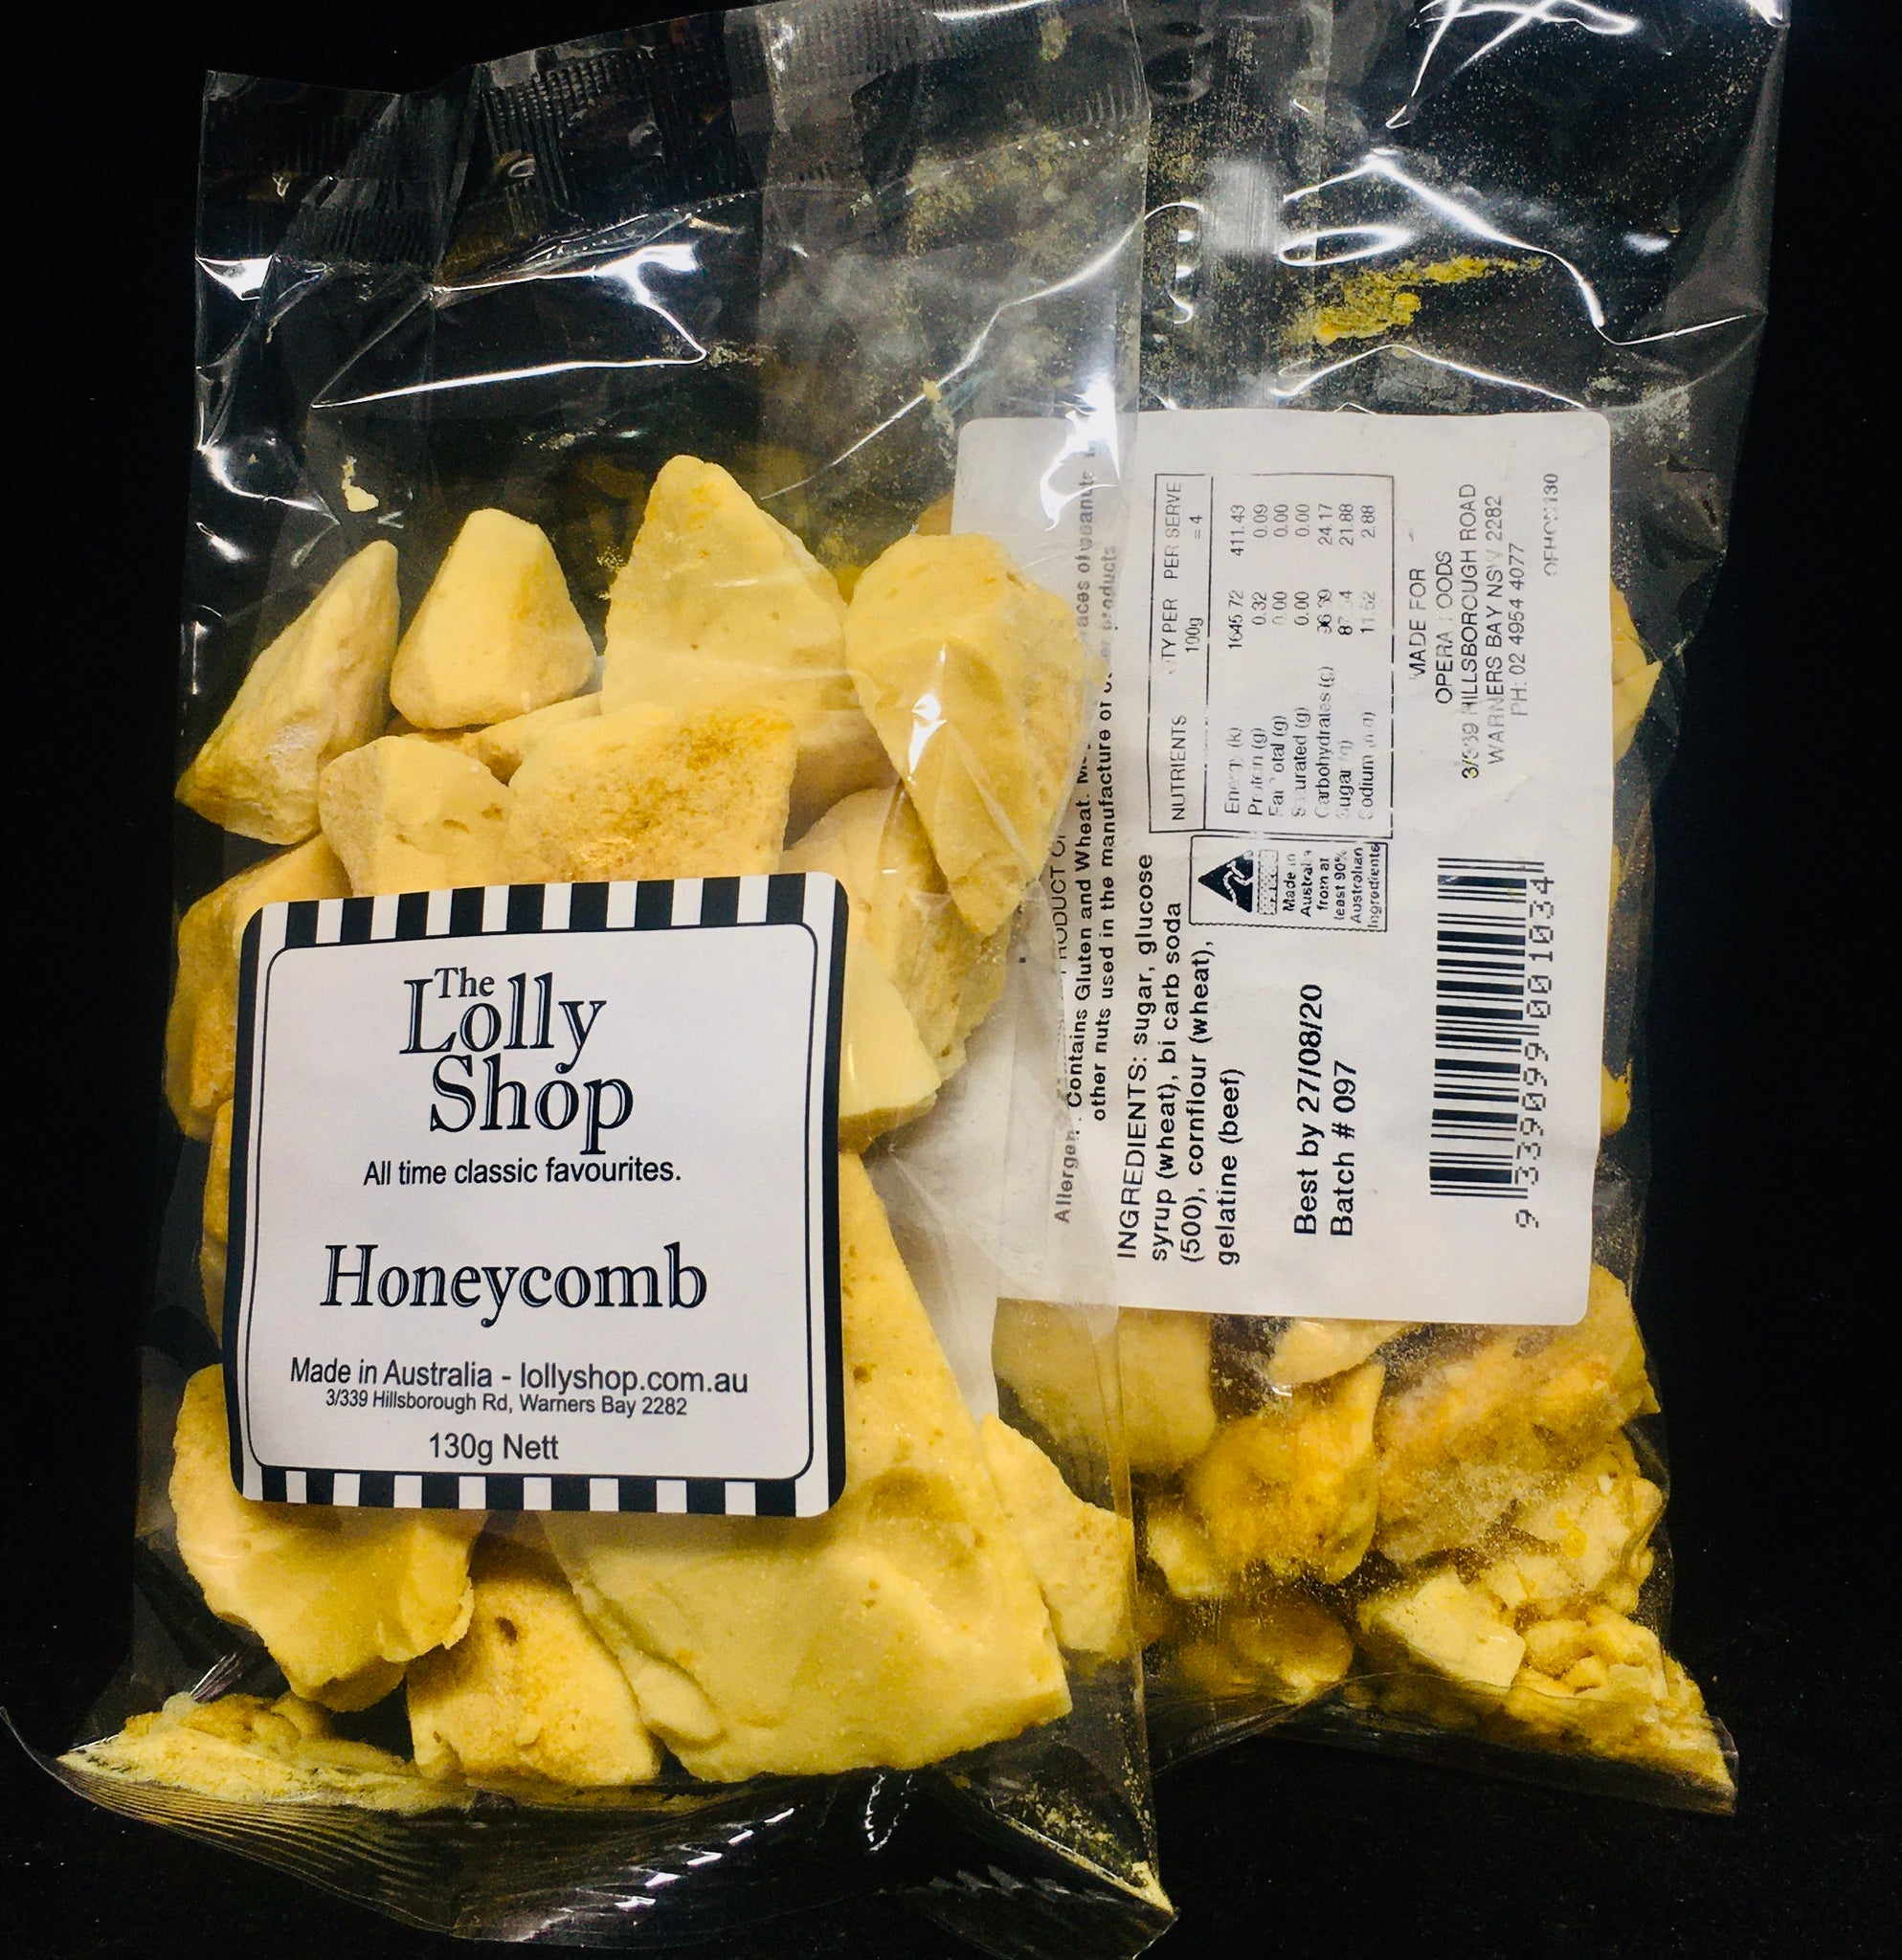 The Lolly Shop Honeycomb